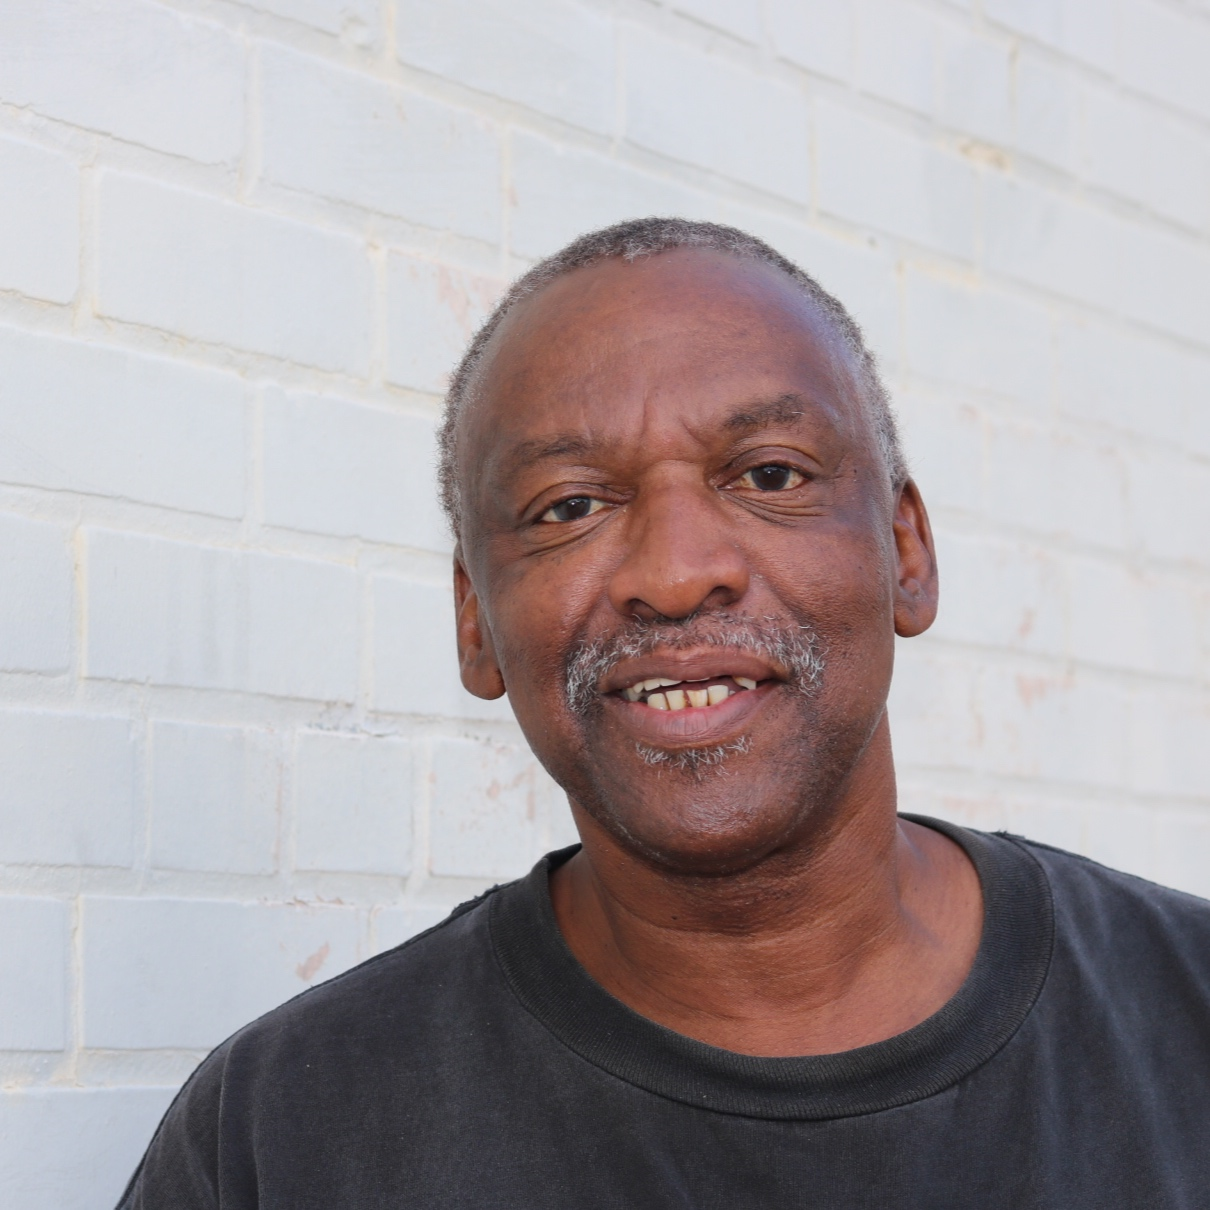 Larry Maryland, Maintenance Associate   Larry works as a Maintenance Associate for WMC but only part time. In addition, he works for Purolator-Facet in the afternoons. He says the people he works for and the people he works with are what he likes most about the job. In his spare time, he enjoys fishing and watching sports.